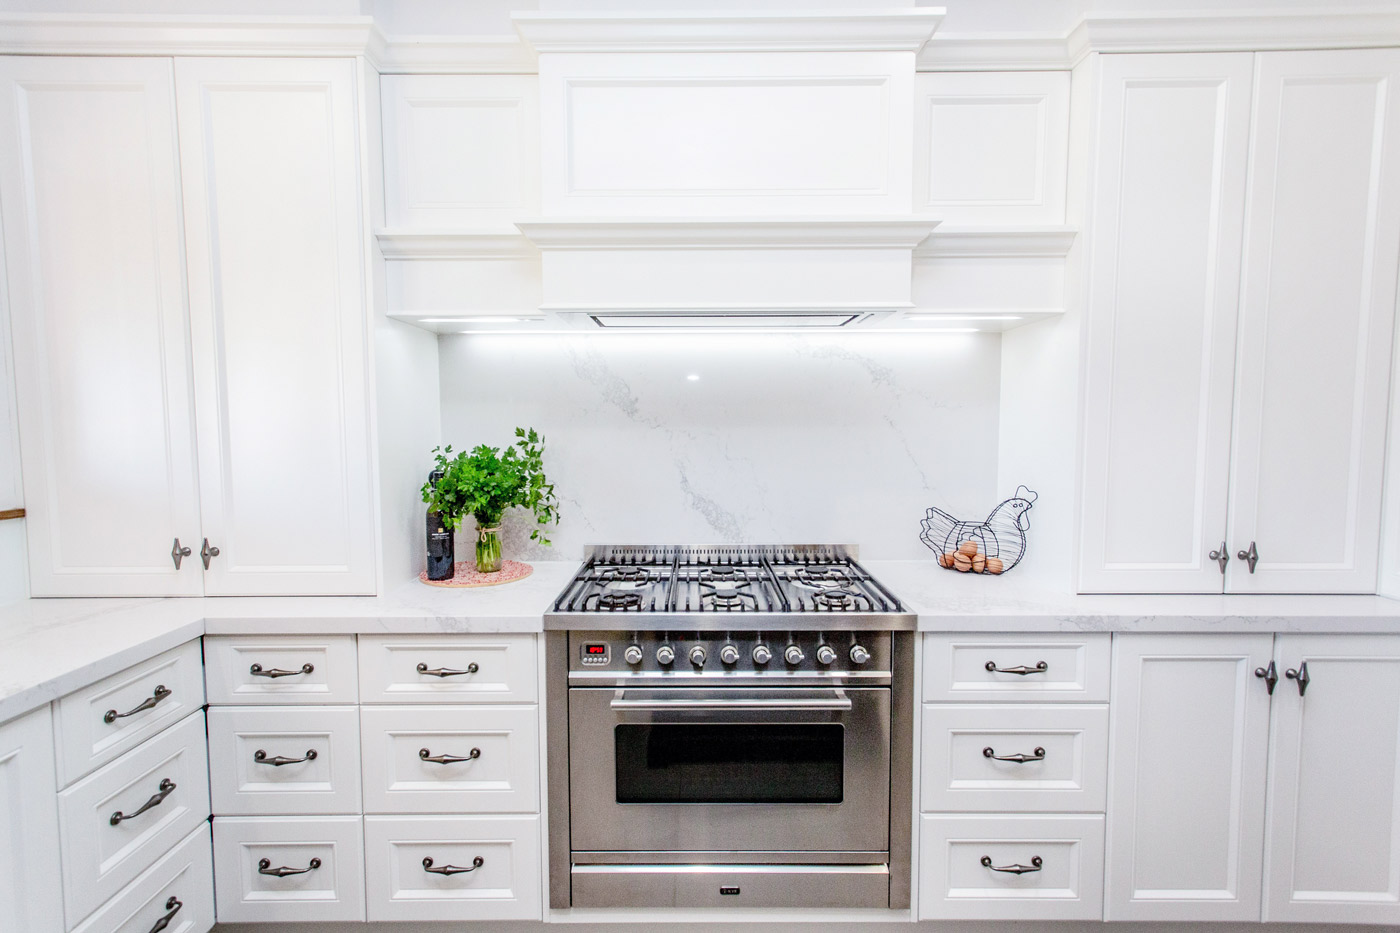 When these owners went back to the family farm they wished to update the homestead kitchen.